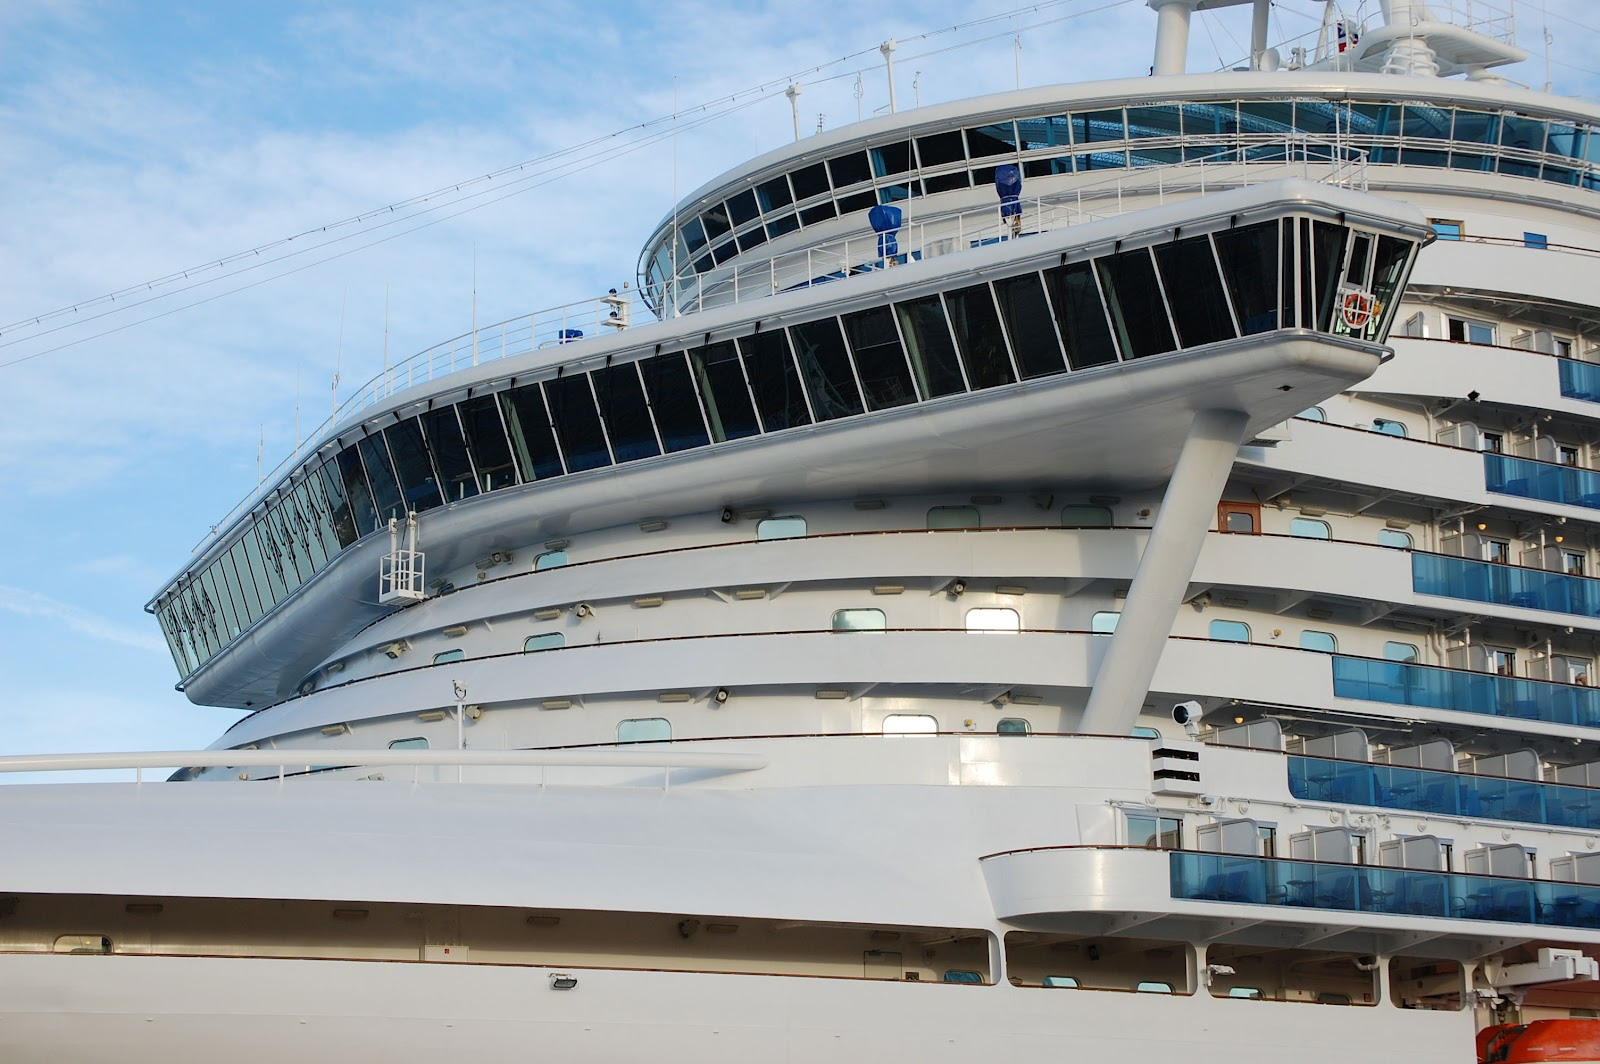 Intimate photos of passenger ships, new chapter